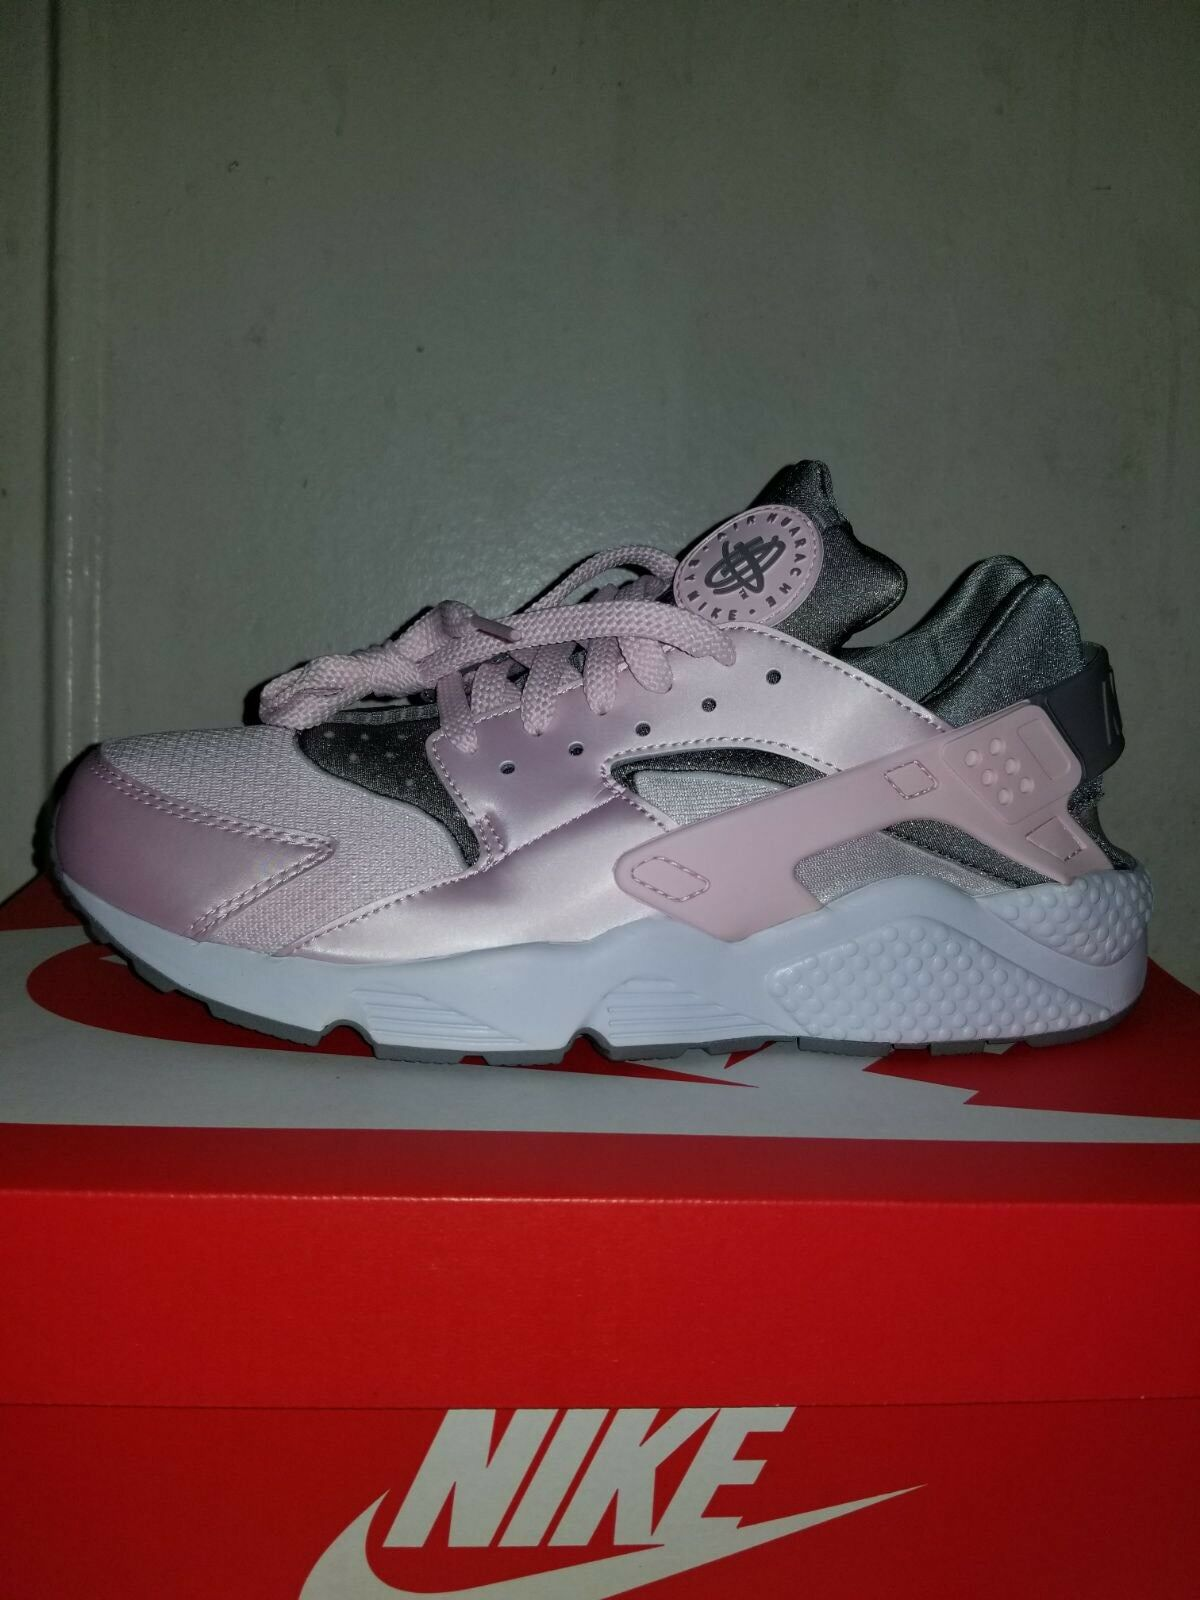 Nike Air Huarache Men's 10.5 Sneakers Arctic Pink Dust White 318429610